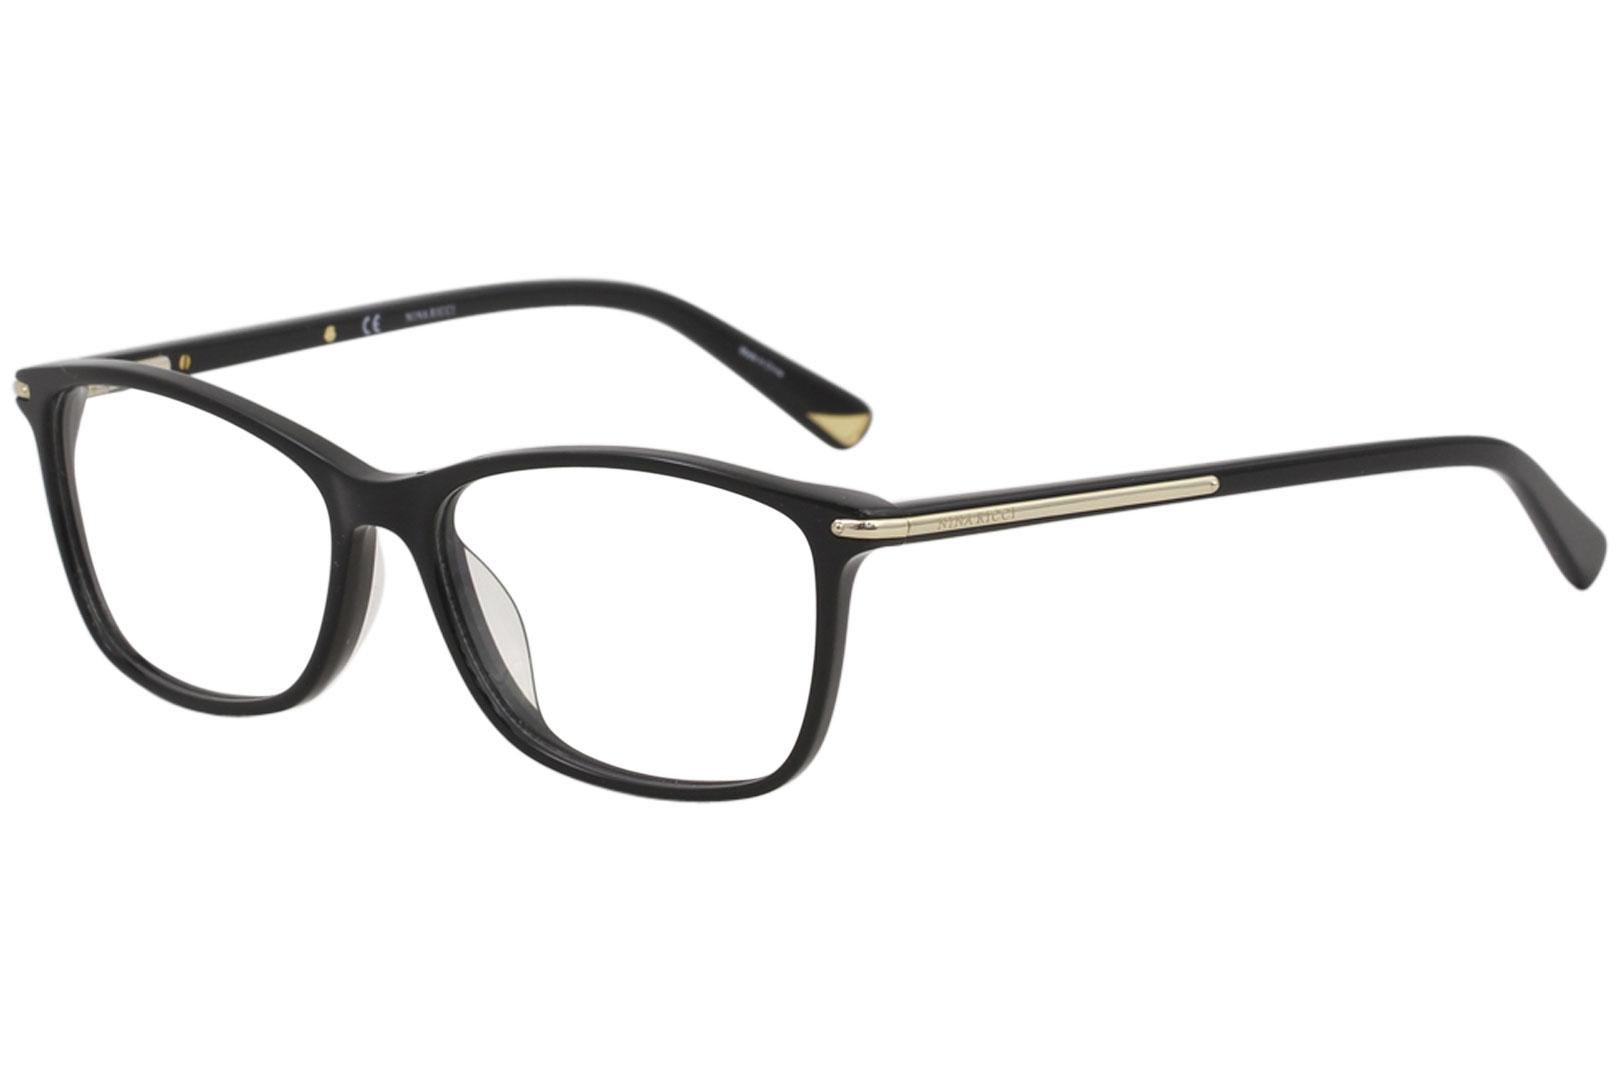 Image of Nina Ricci Eyeglasses VNR038 VNR/038 0700 Black Full Rim Optical Frame 53mm - Shiny Black   0700 - Lens 53 Bridge 15 Temple 140mm